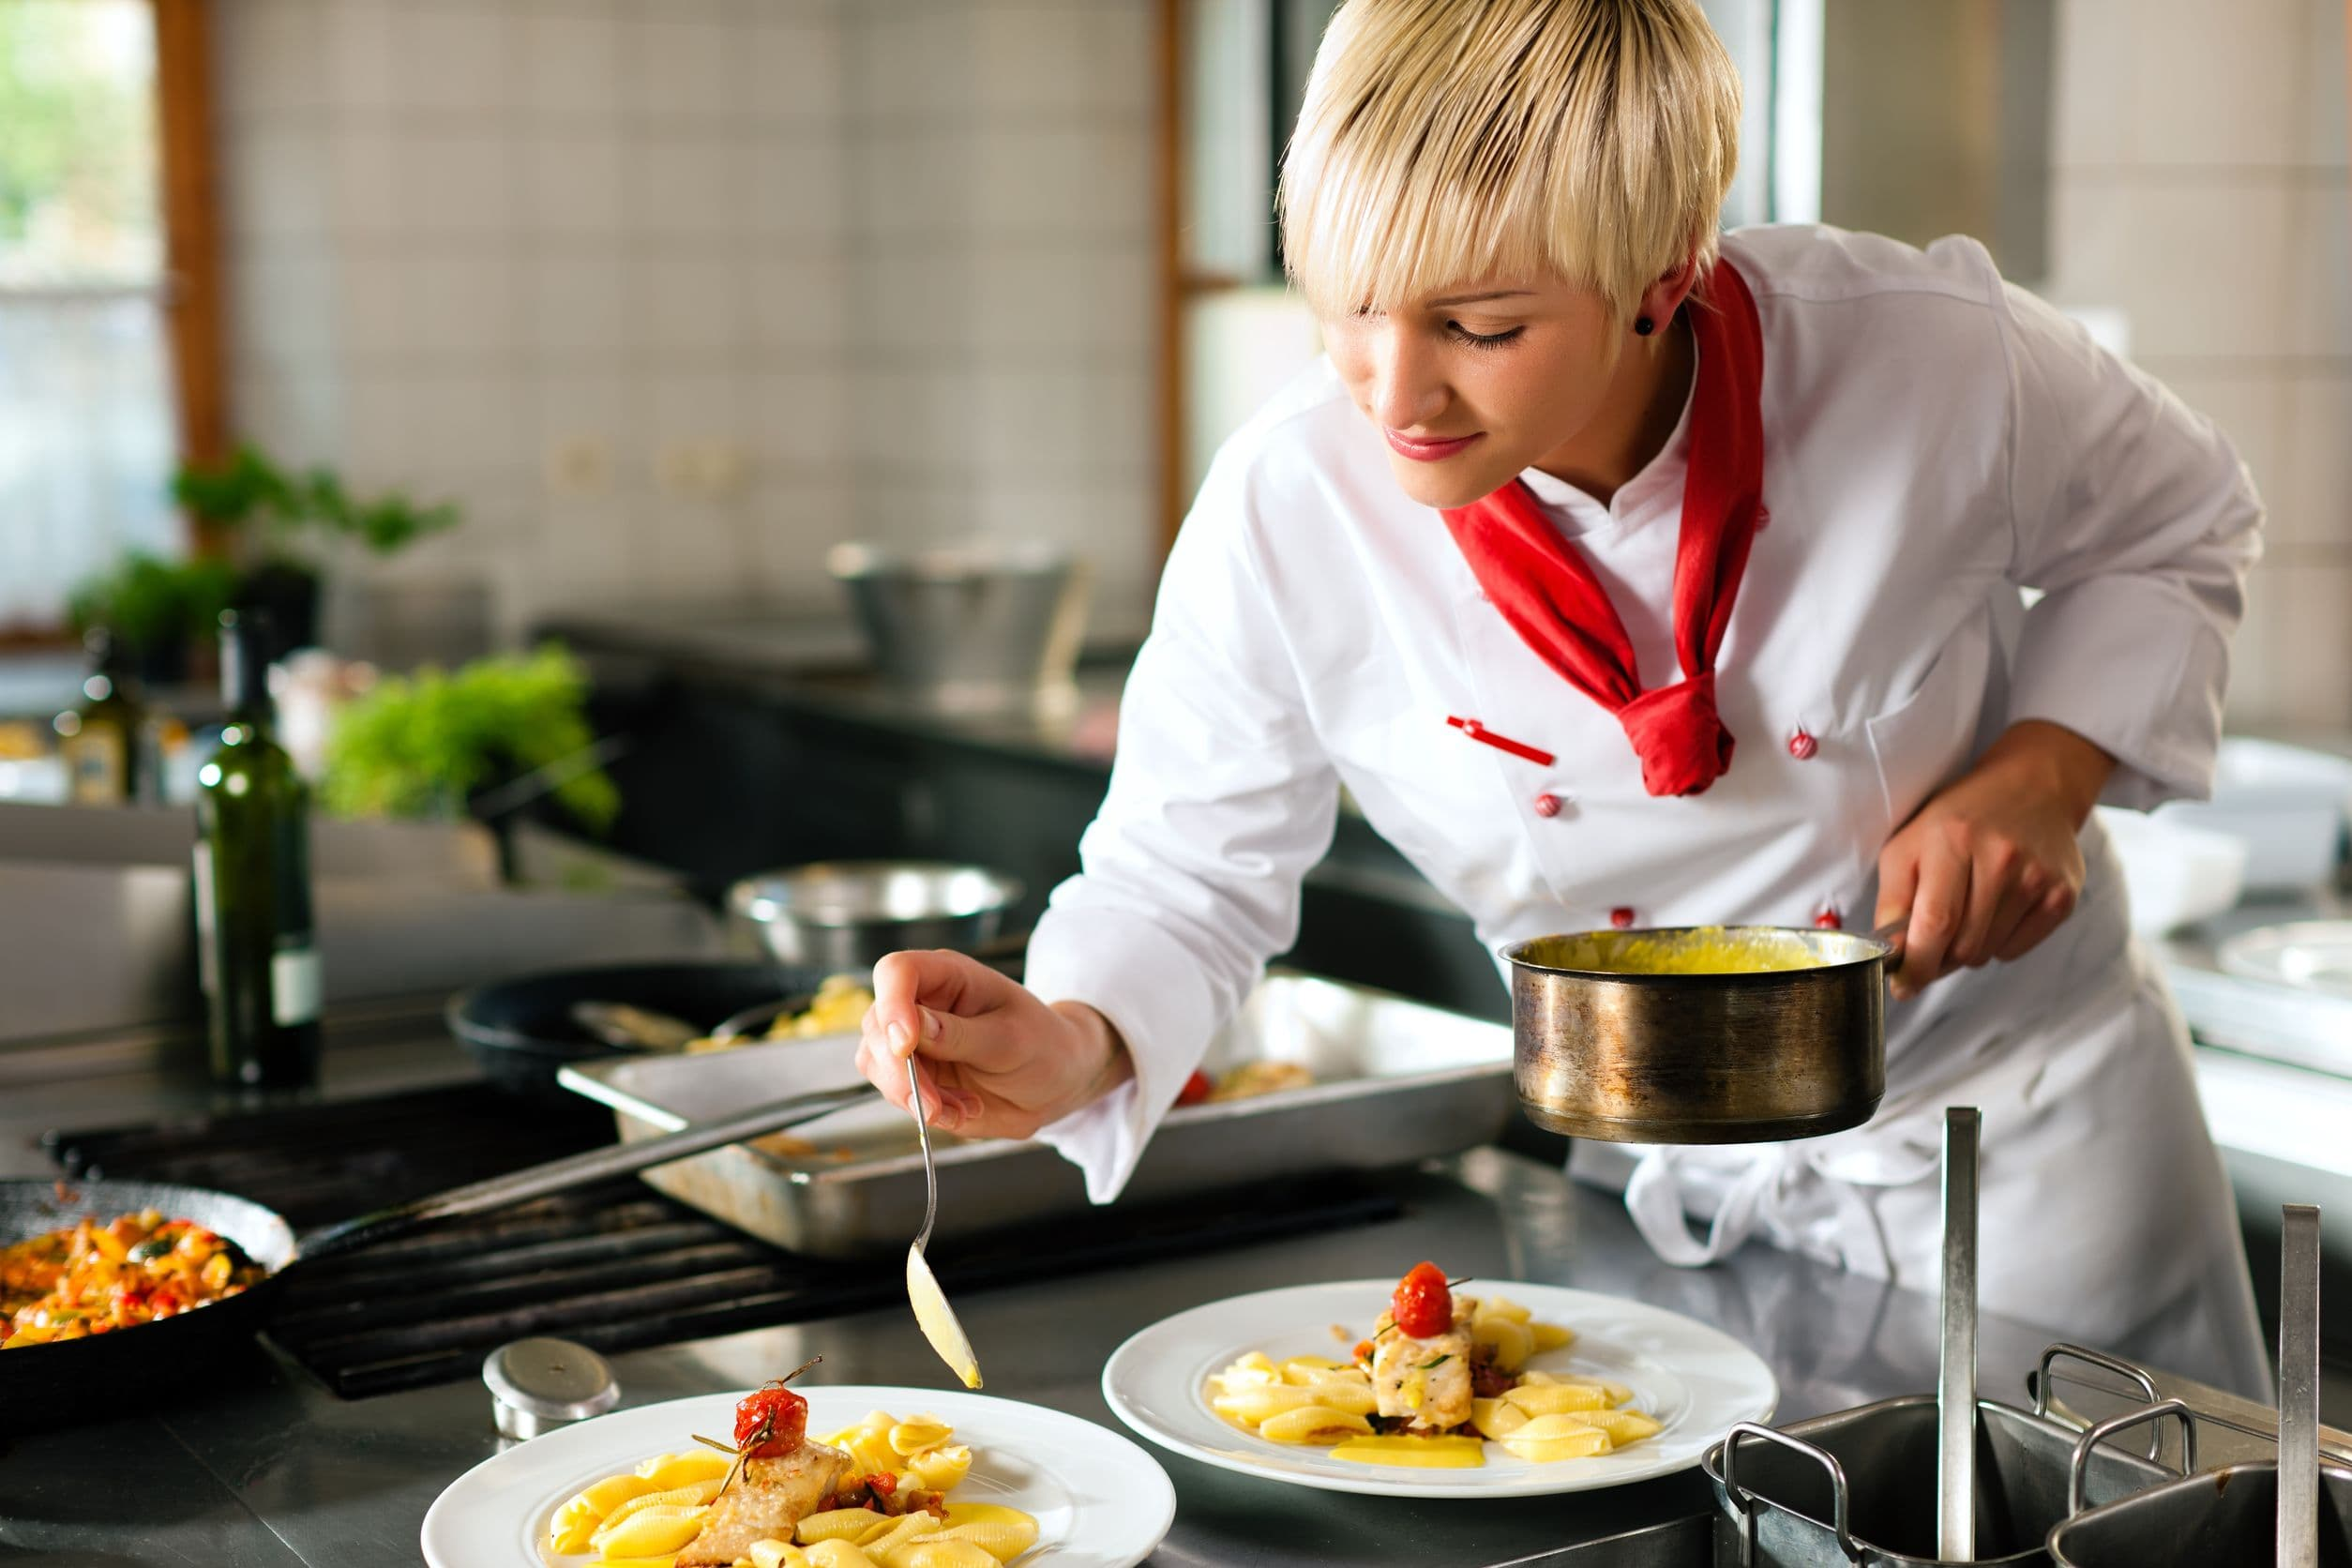 Outfitting Your Chefs: Kitchen Uniforms